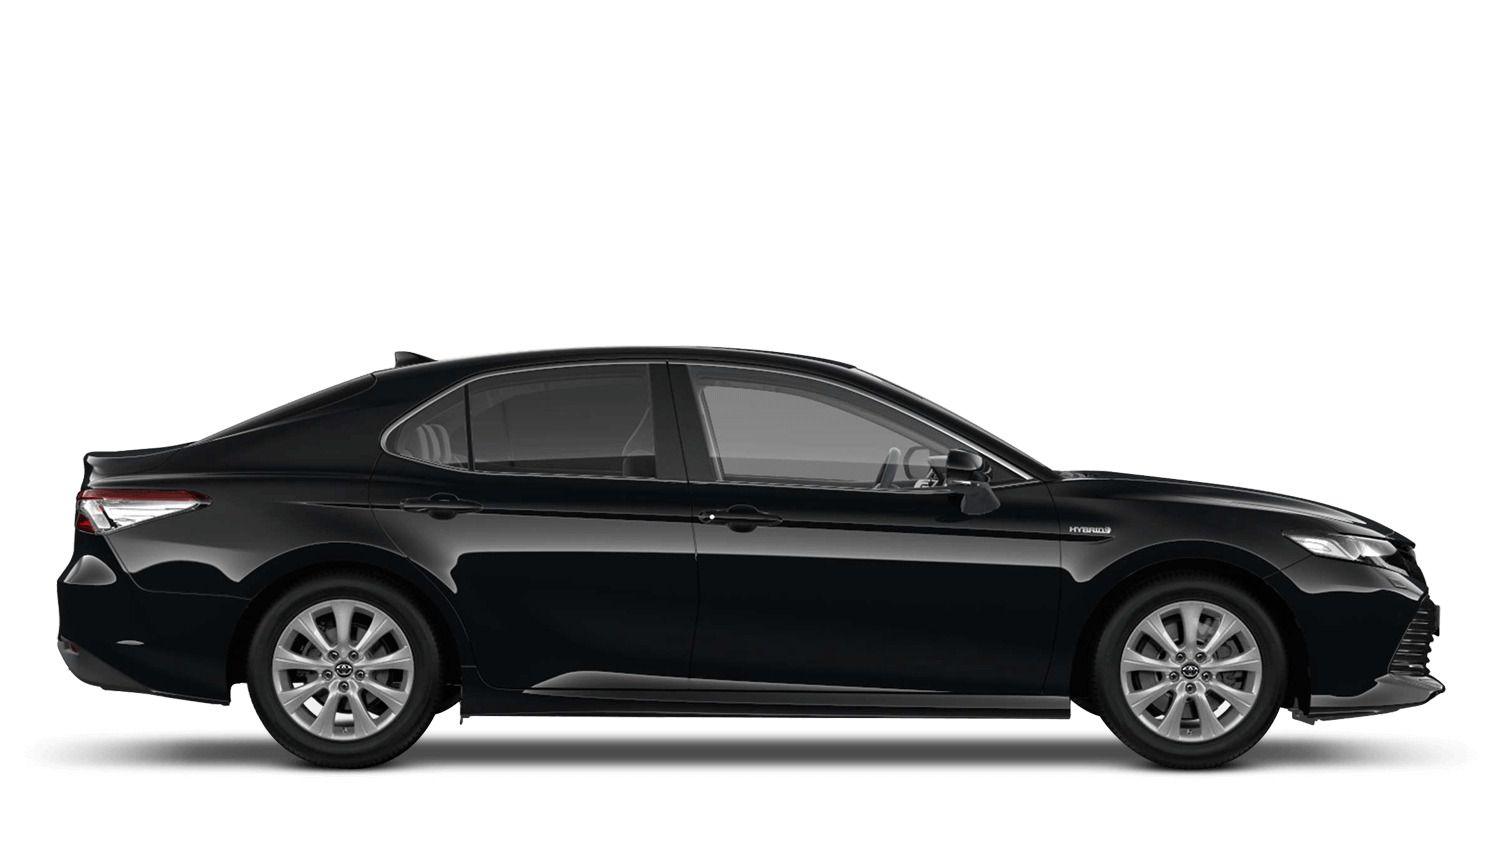 Camry Hybrid Design Business Offer